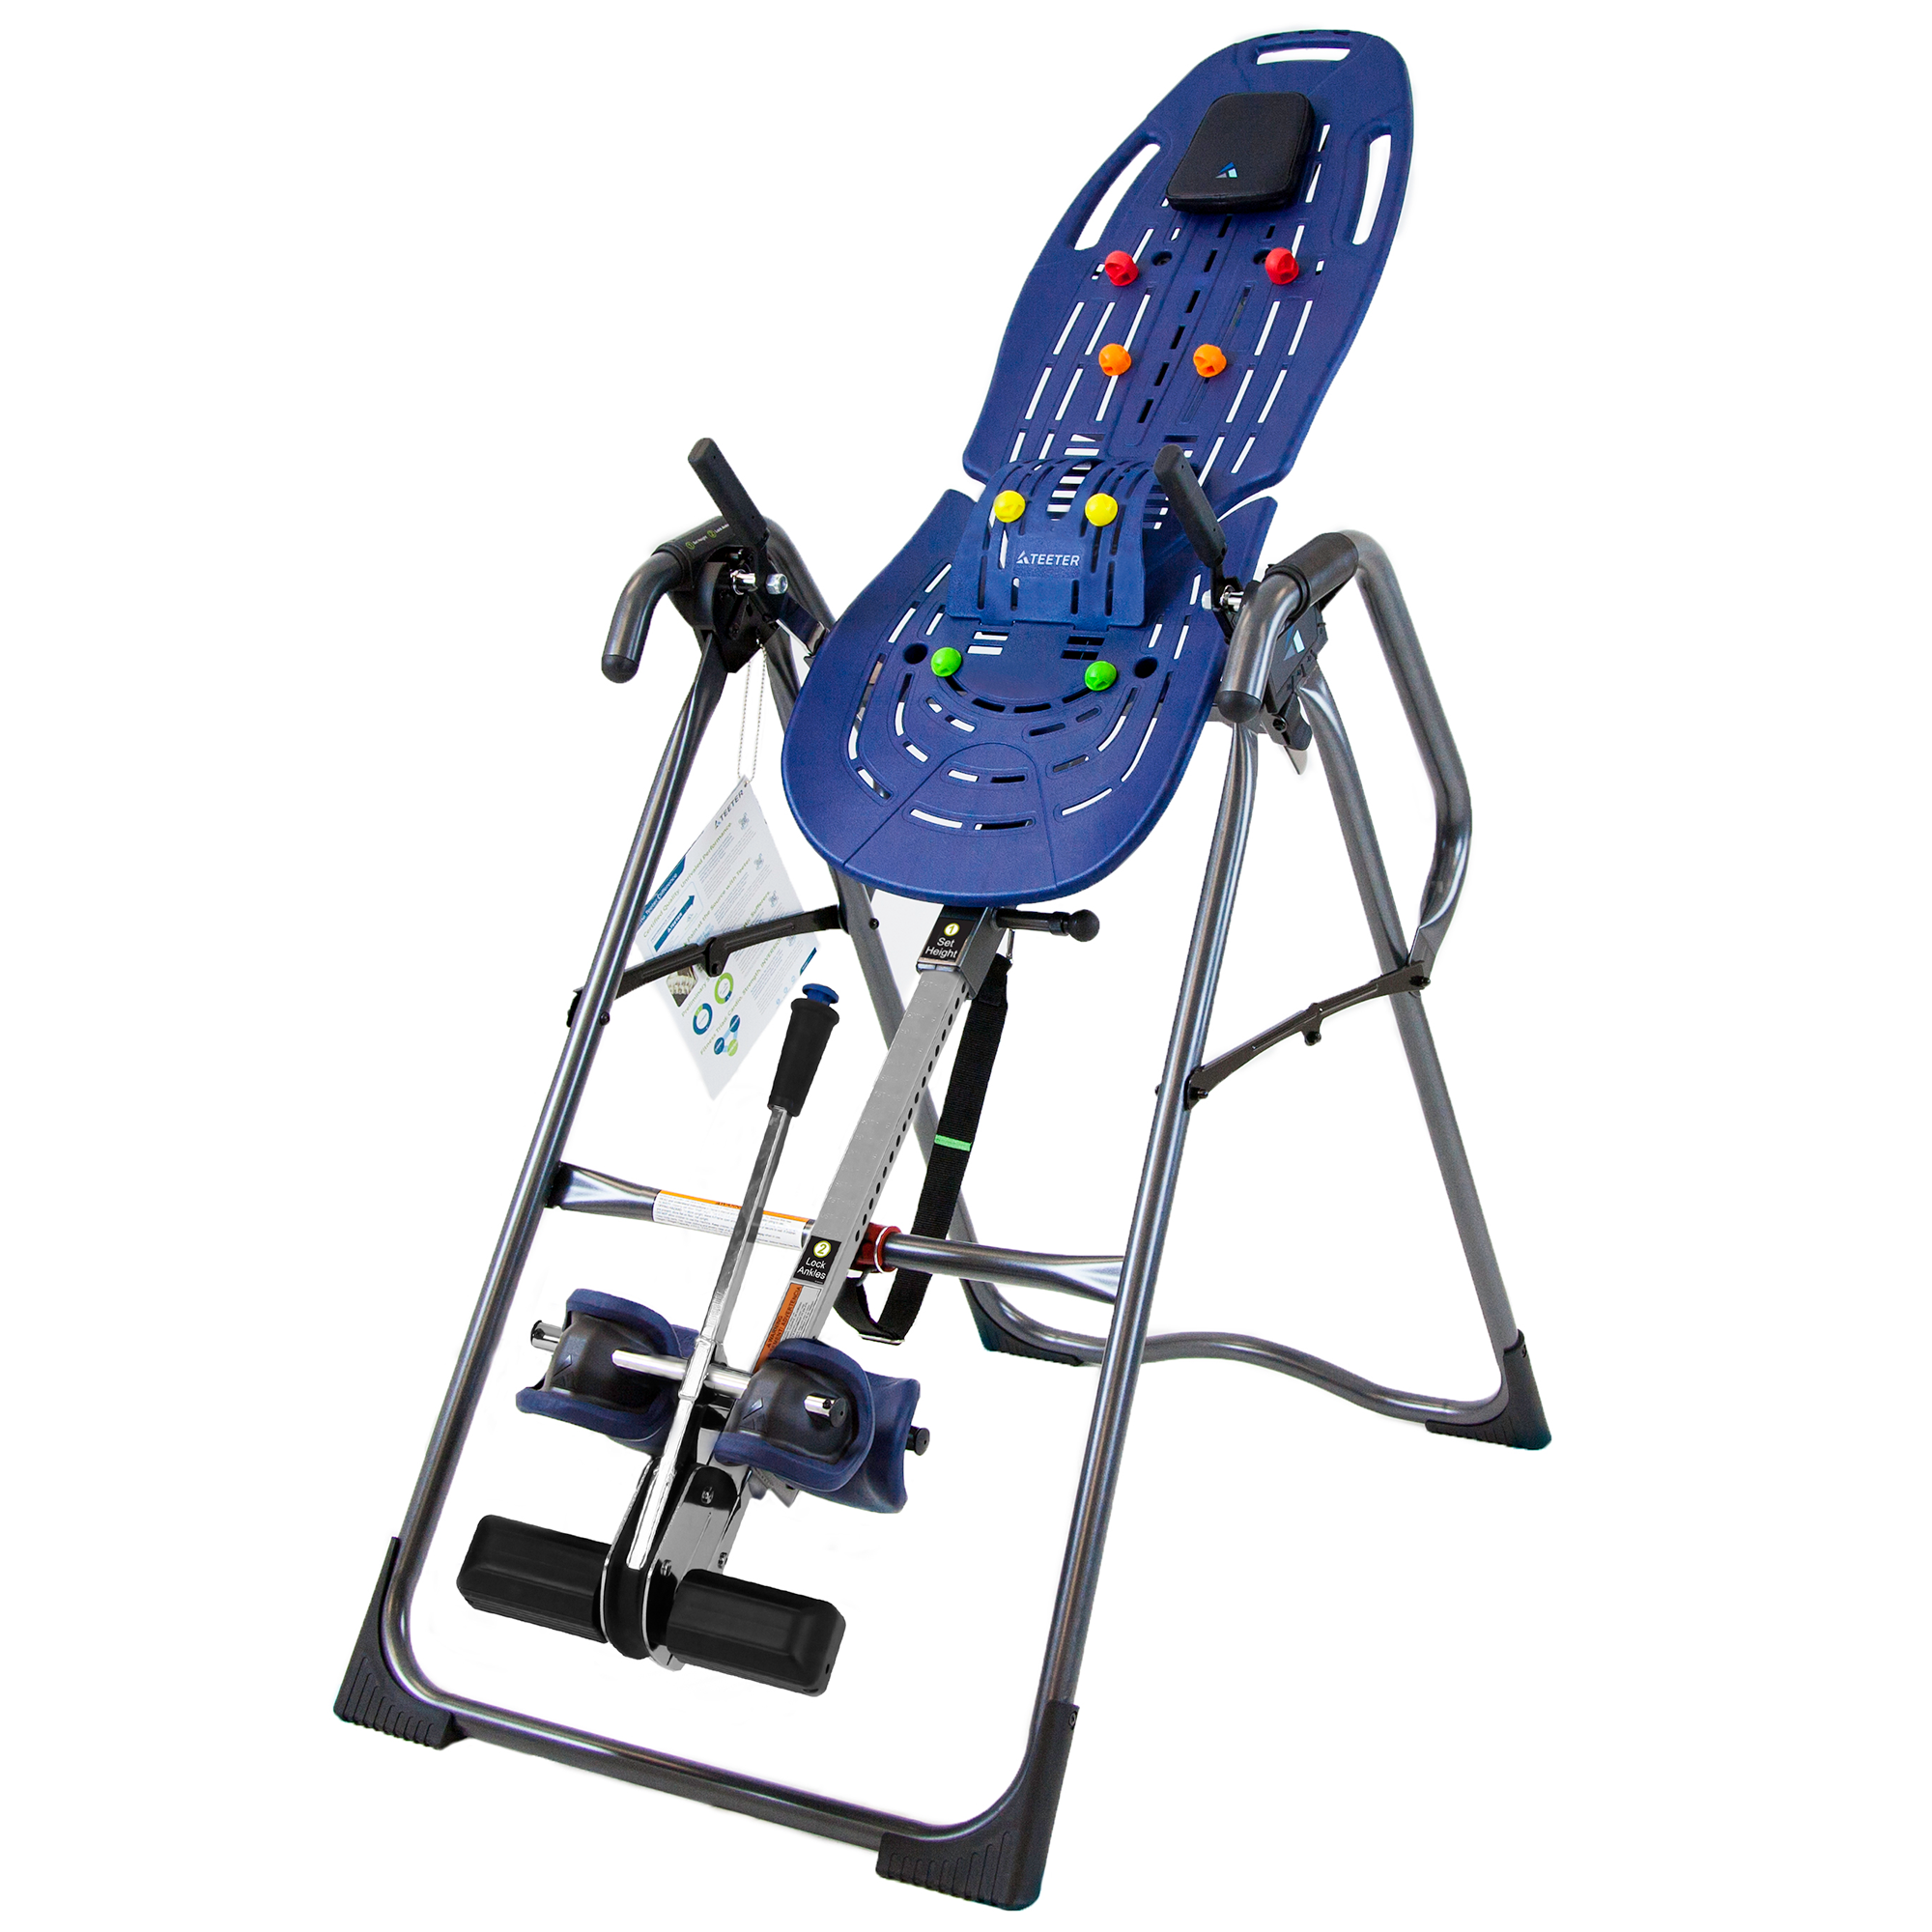 Teeter EP-970 Ltd. Inversion Table with Back Pain Relief Kit by Teeter